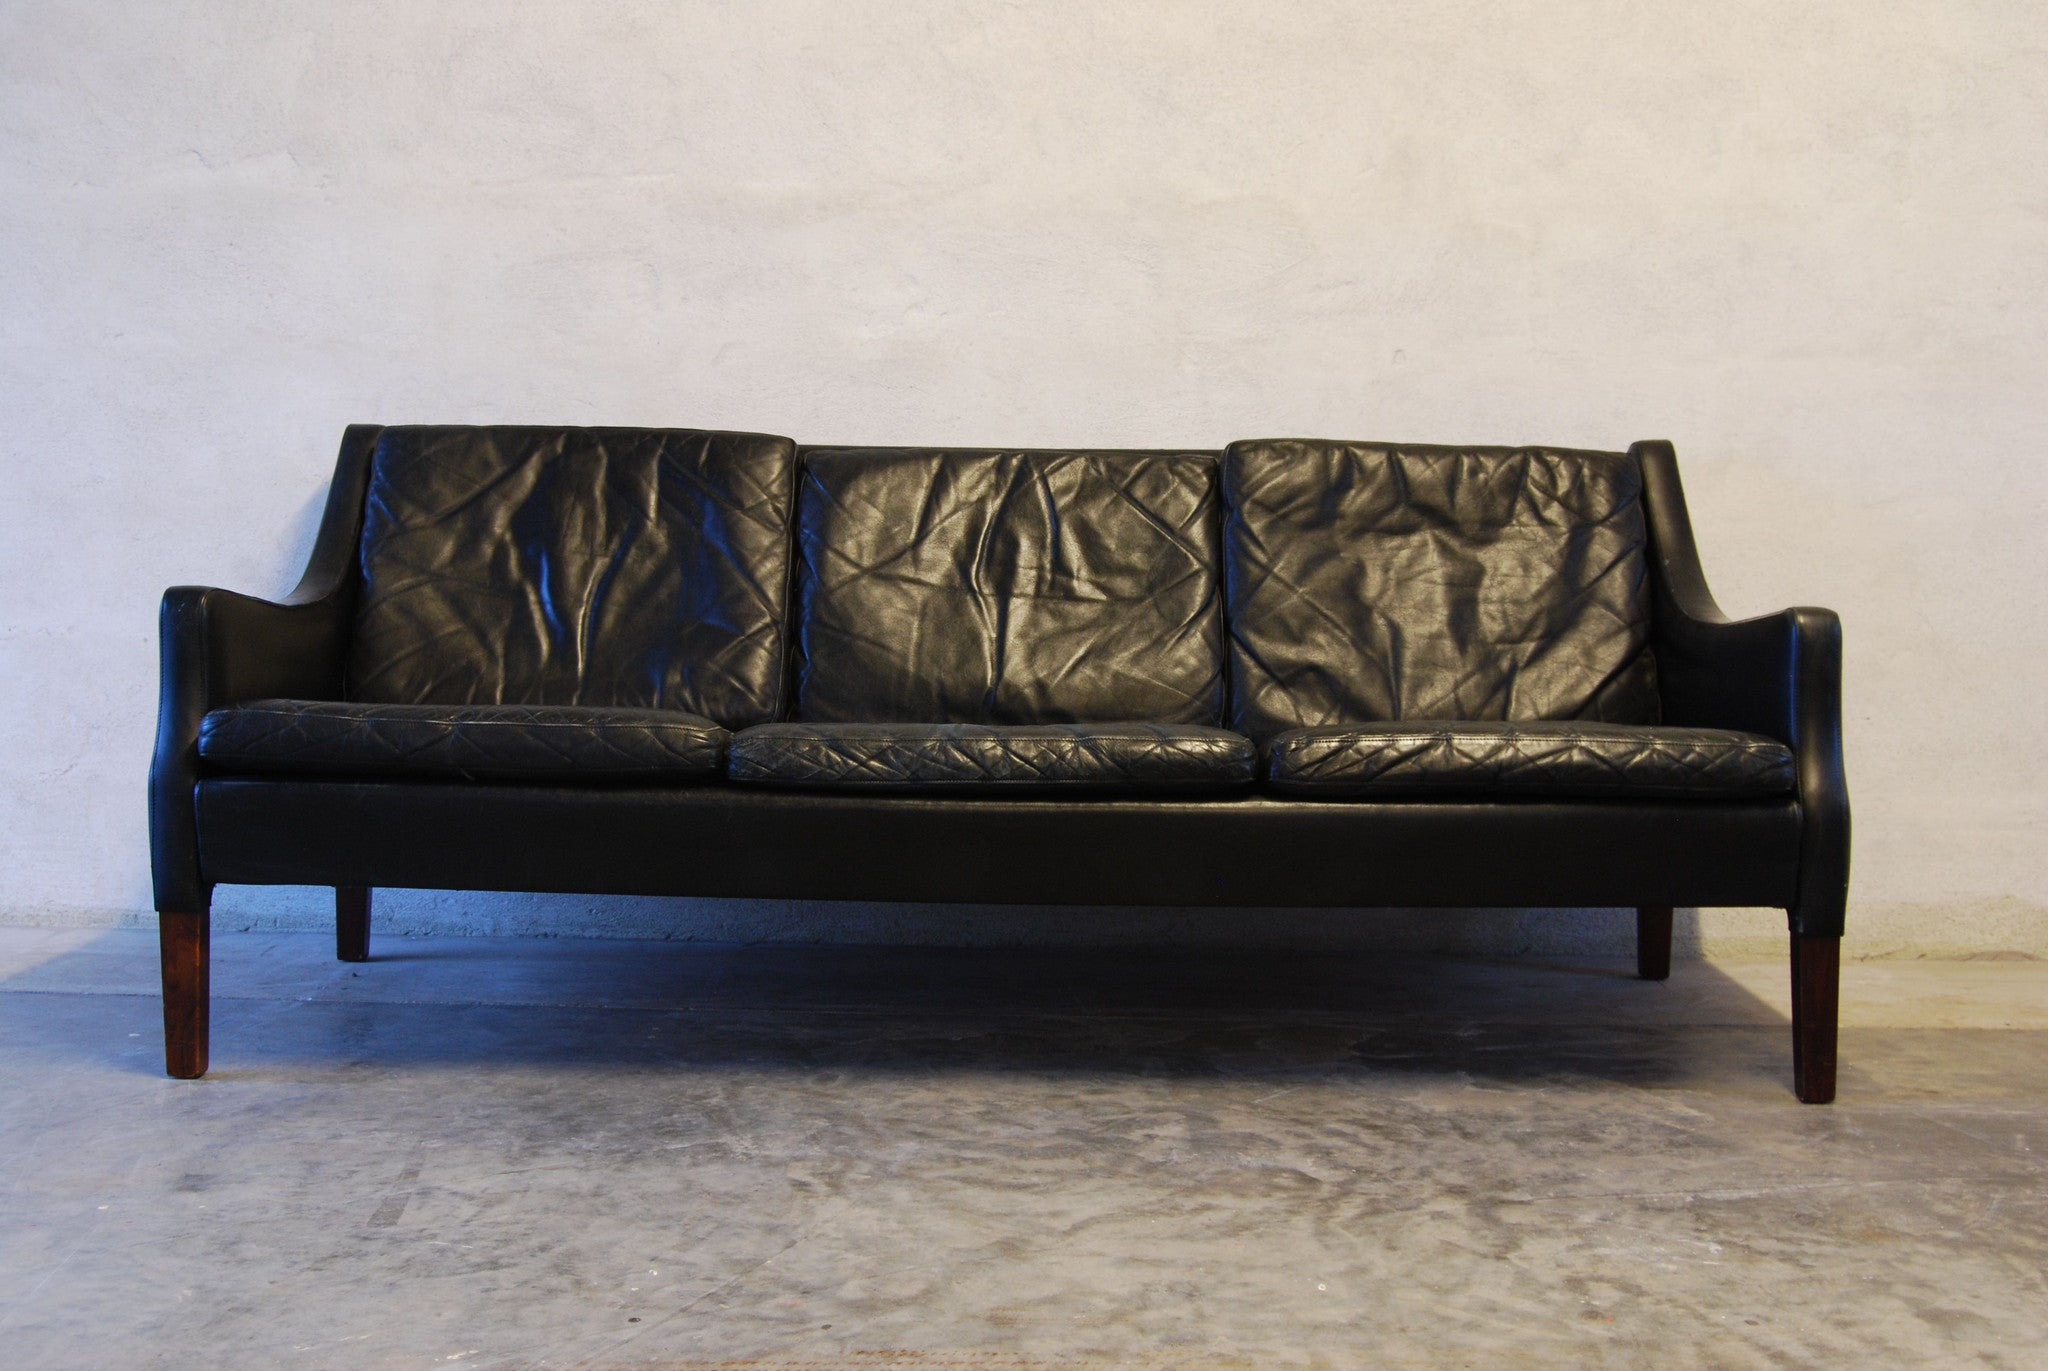 Chase & Sorensen Three seat sofa in jet black leather